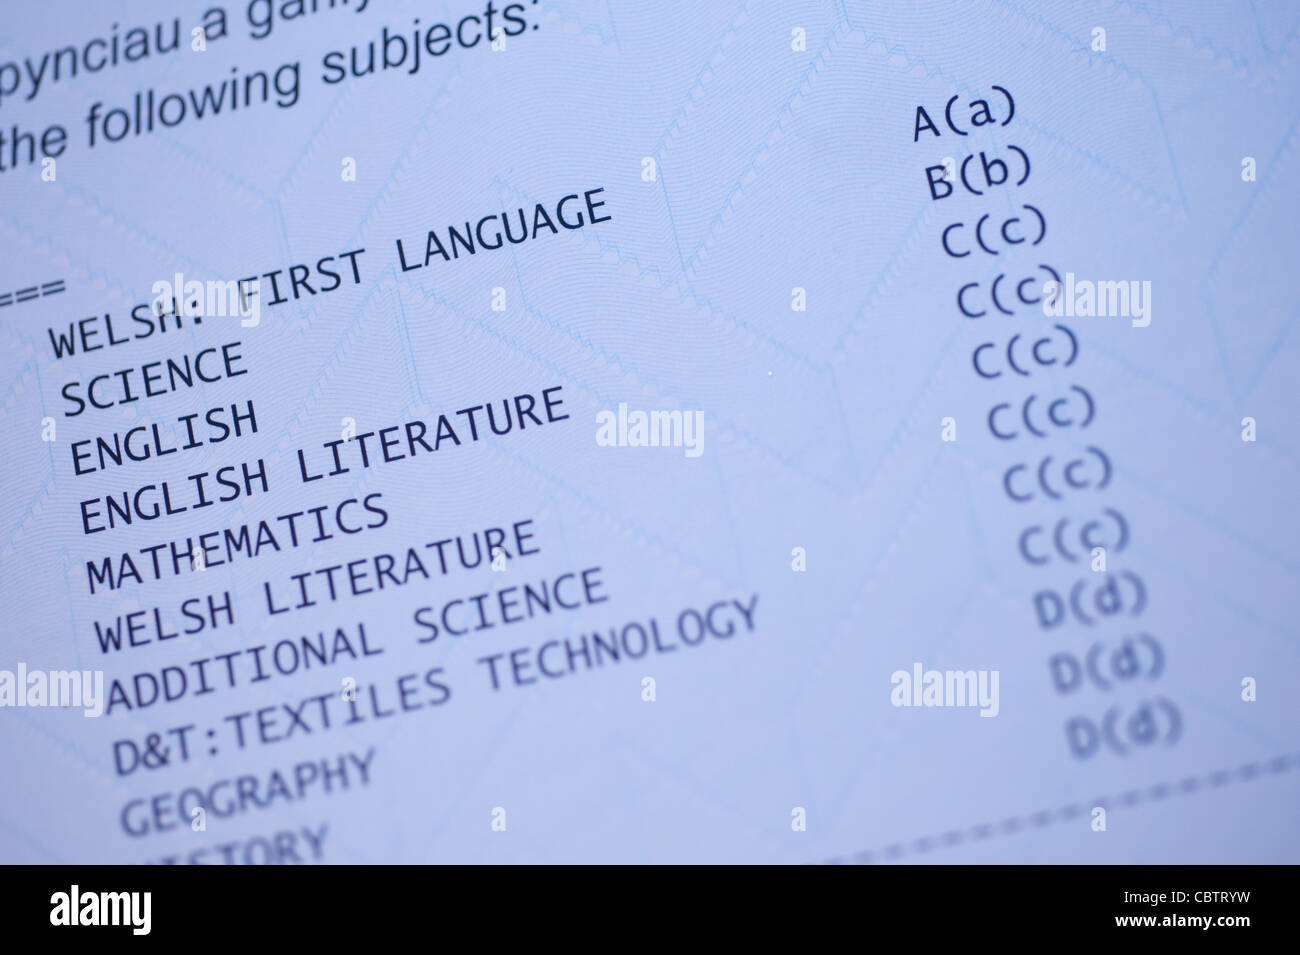 Wjec english coursework guidelines